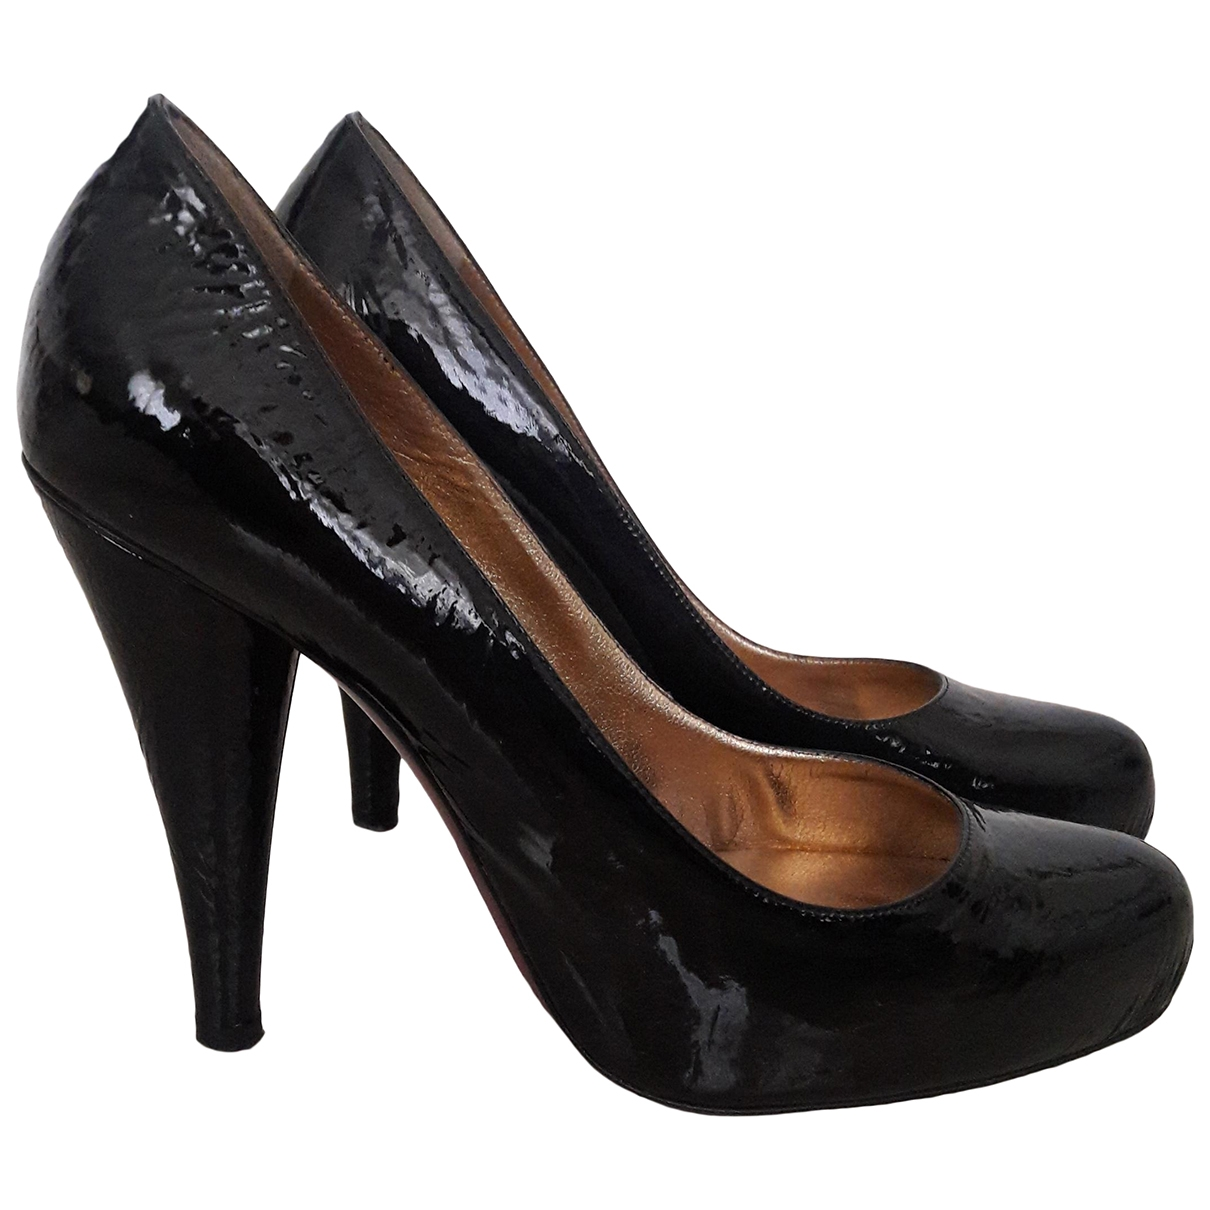 D&g \N Black Patent leather Heels for Women 38 EU